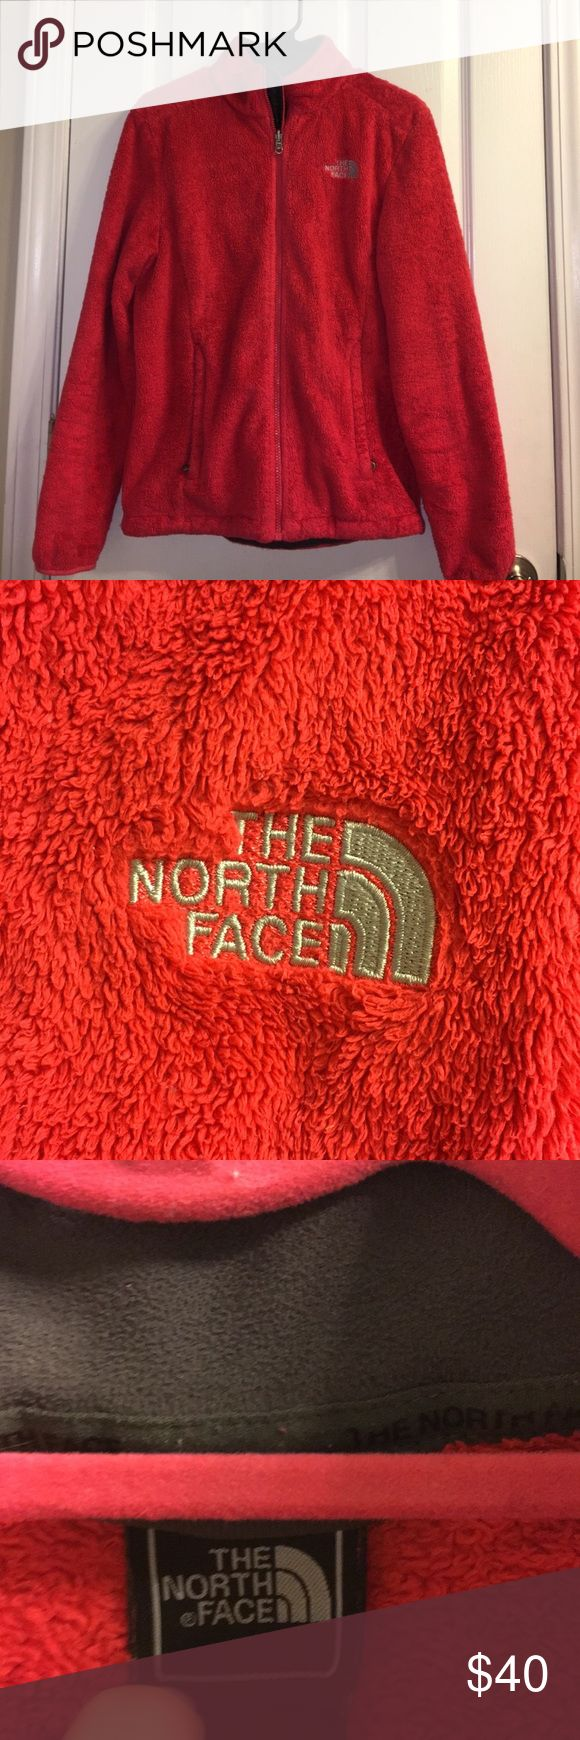 Fuzzy Women's Osito North Face Jacket Red fuzzy North Face. Overall in good condition except some wear on bottom of sleeves, shown in picture! The North Face Jackets & Coats